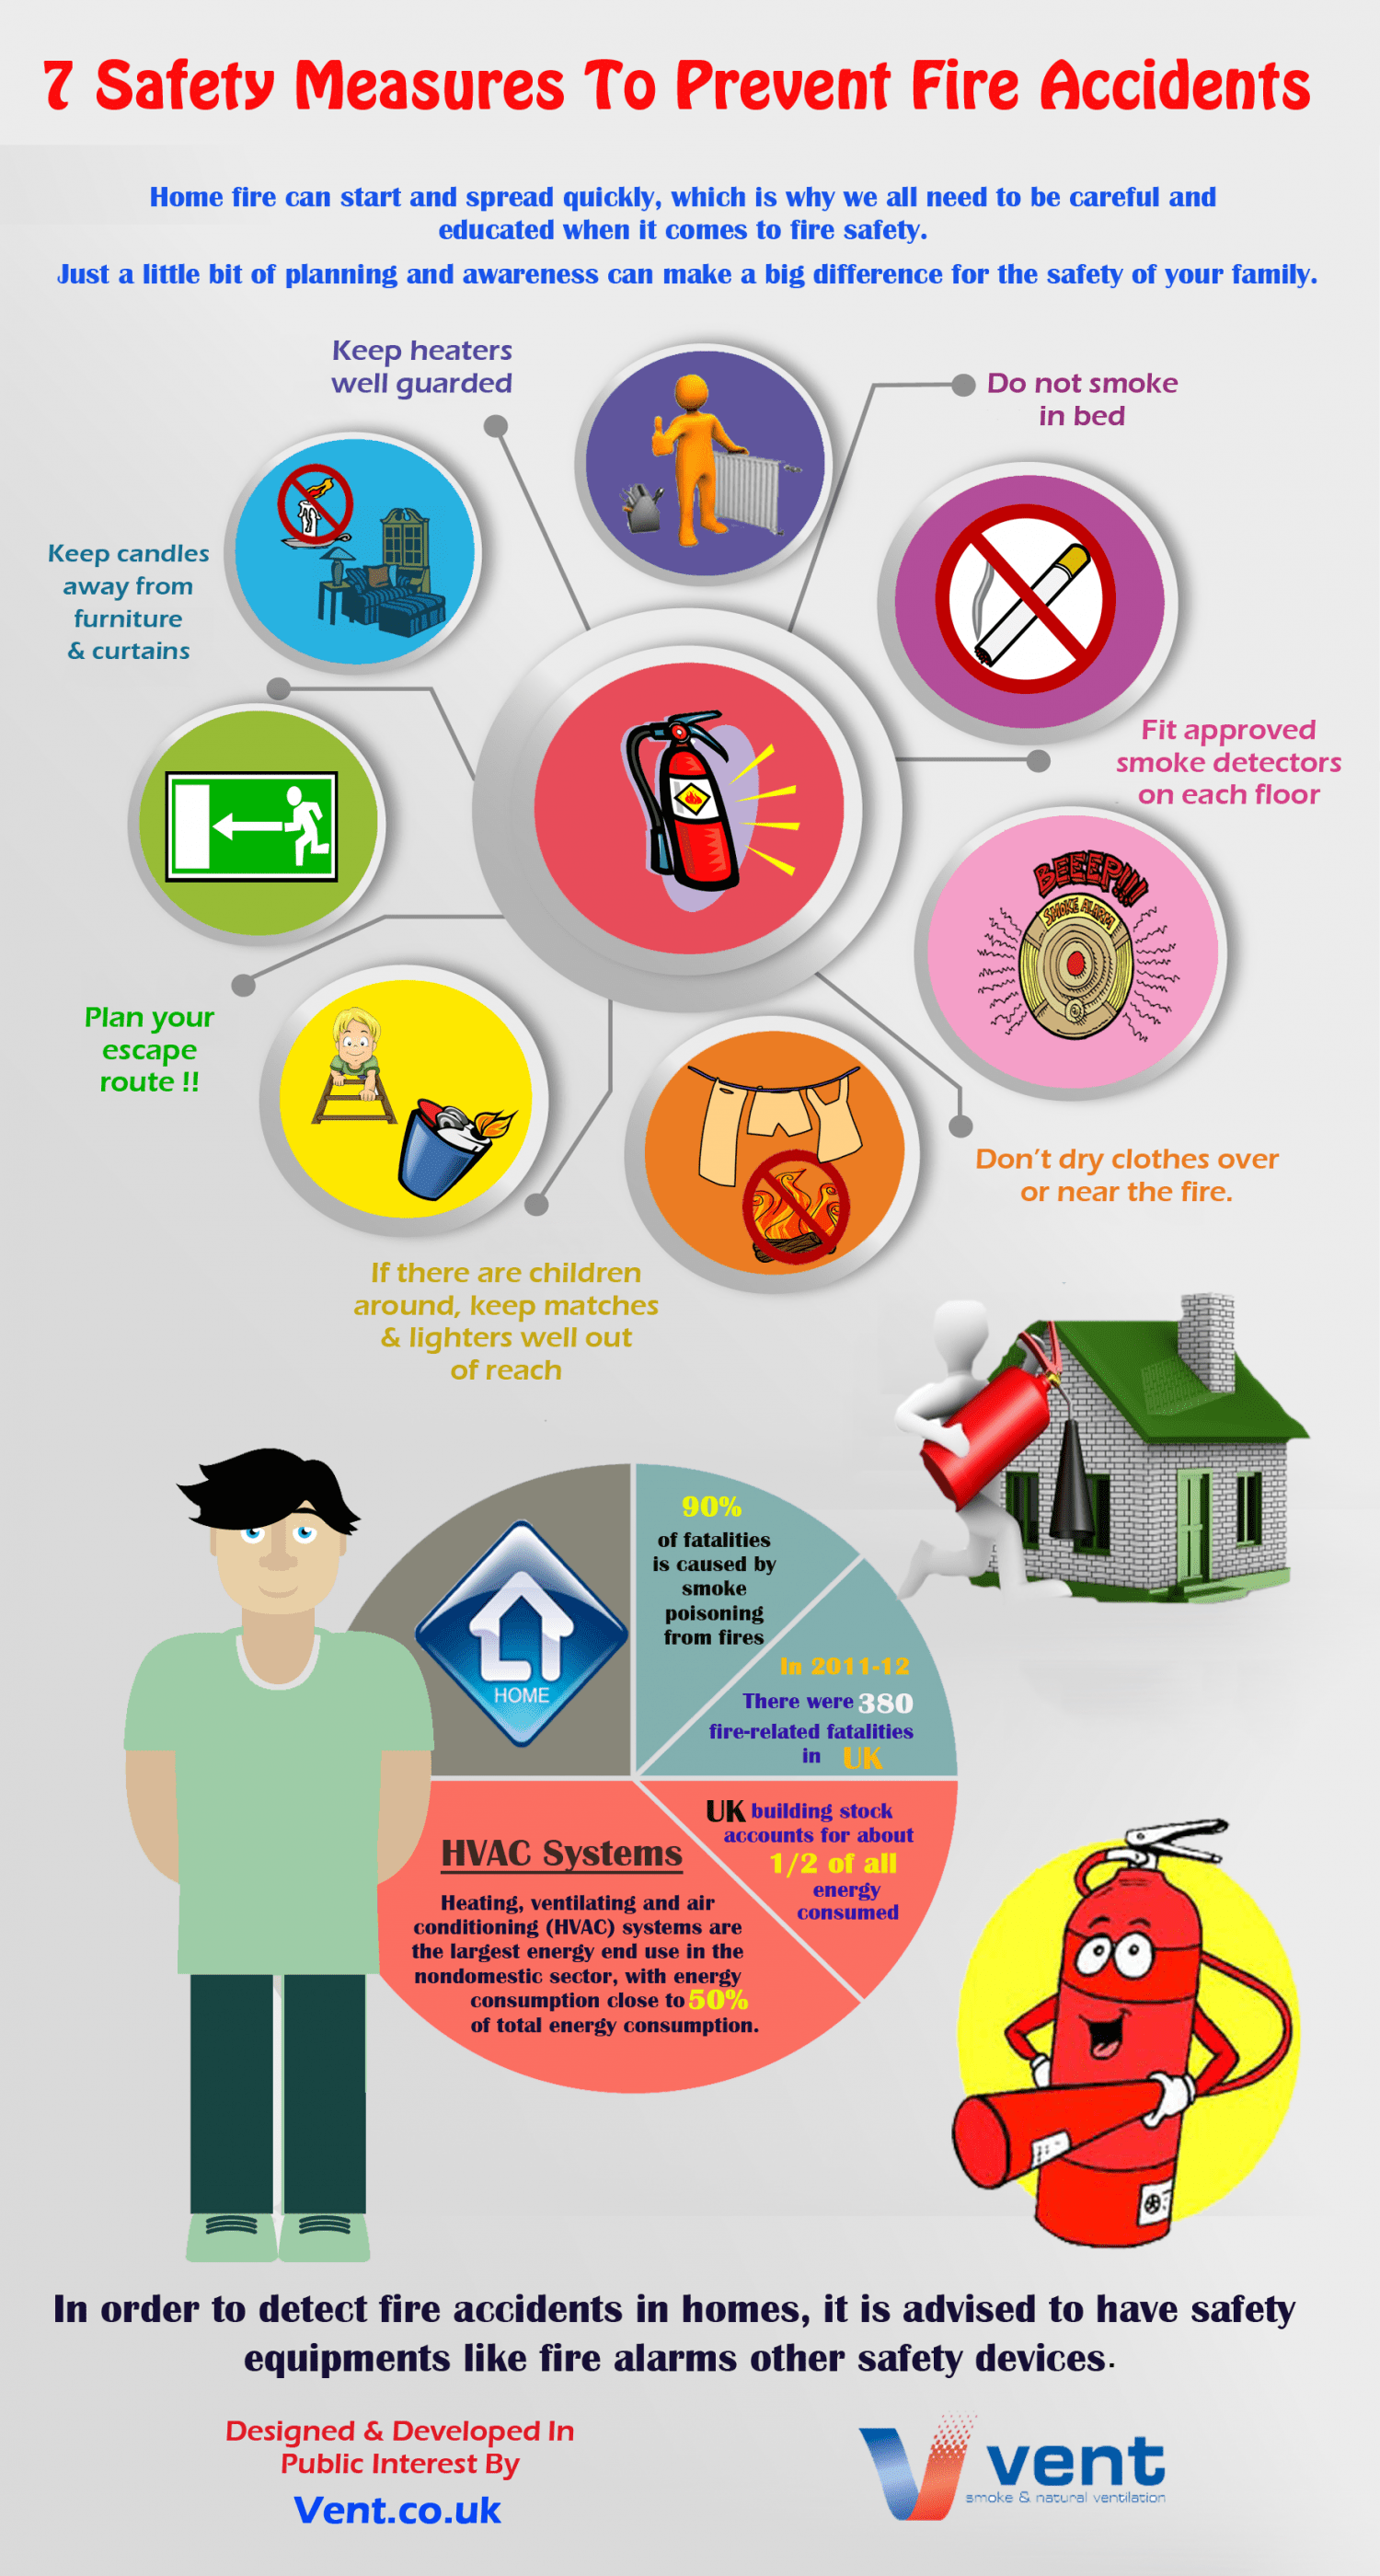 Tips To Prevent Fire Accidents In Home